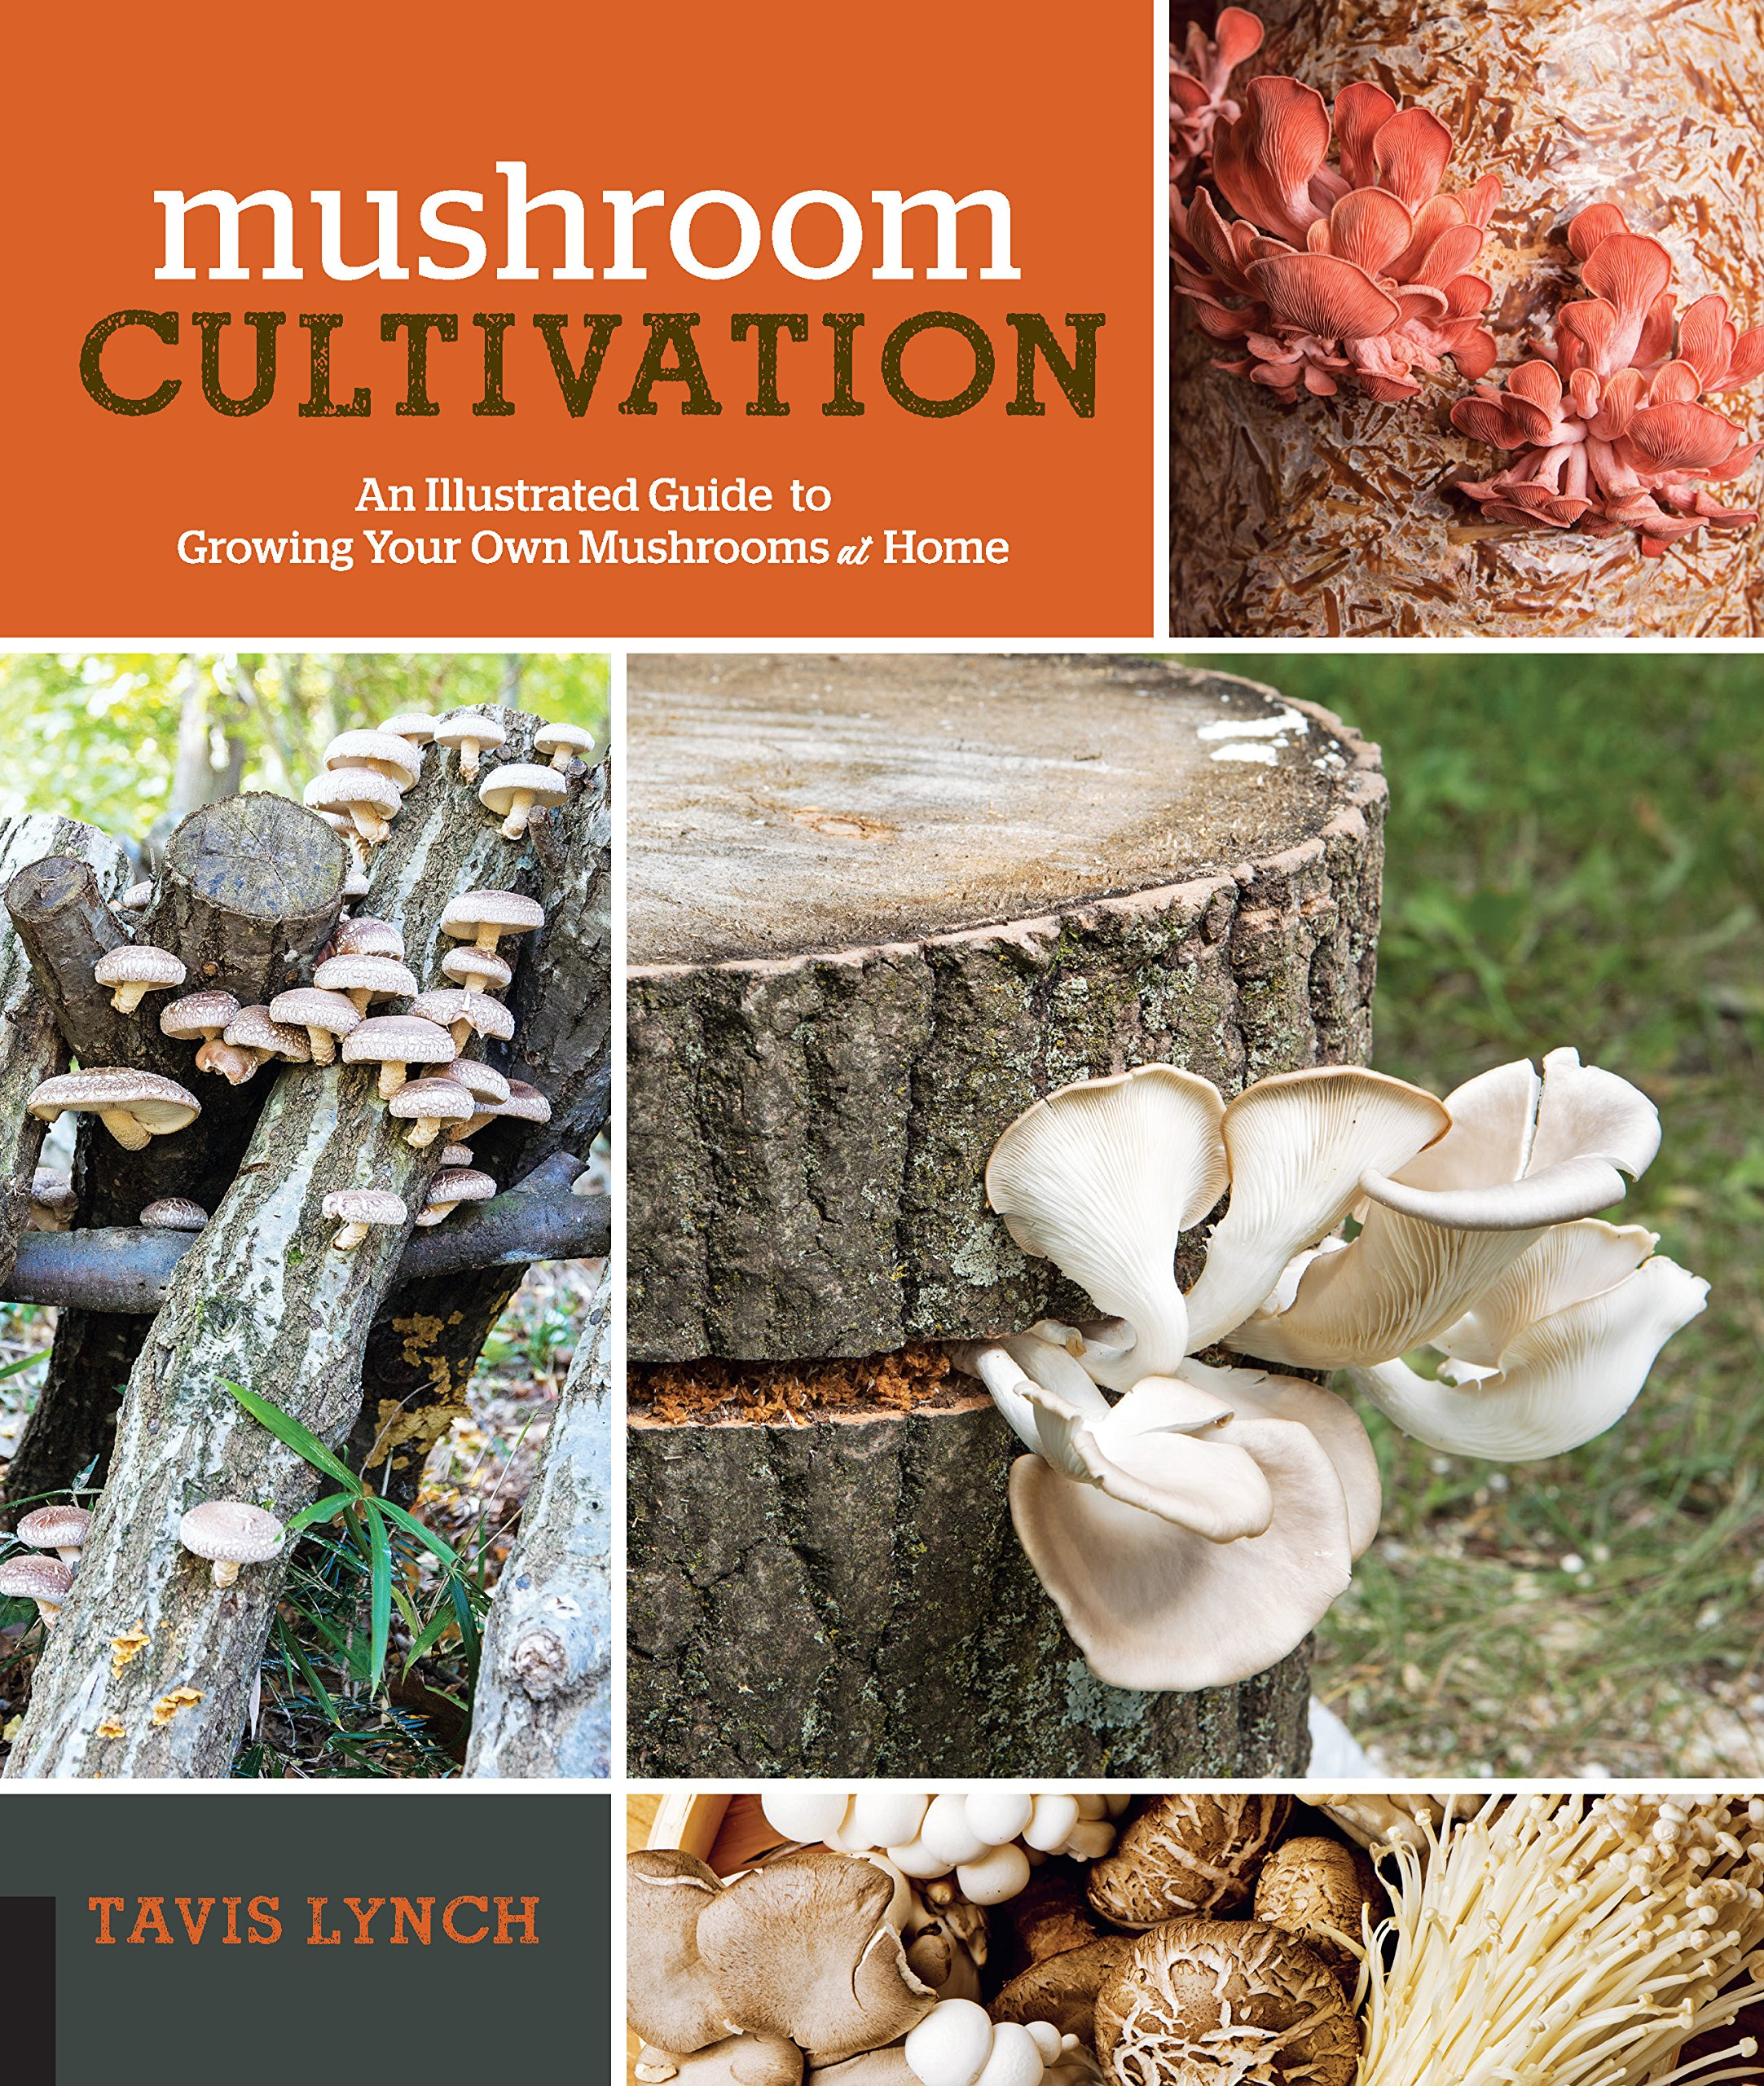 Mushroom Cultivation: An Illustrated Guide to Growing Your Own